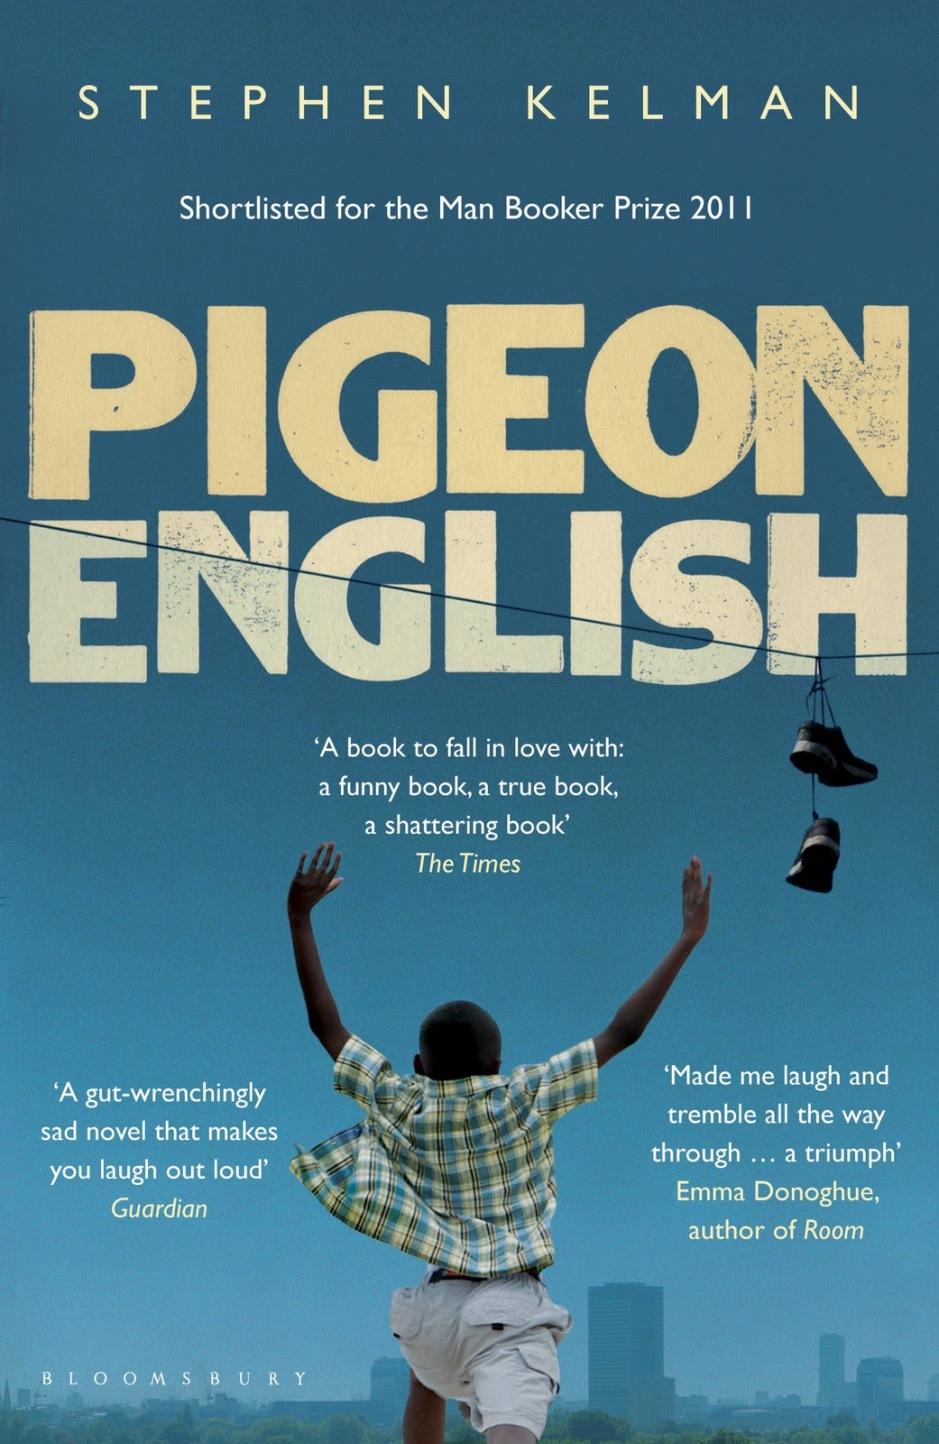 Pigeon English by Stephen Kelman | Book Review By Angela Vincent | The Black Lion Journal | The Black Lion